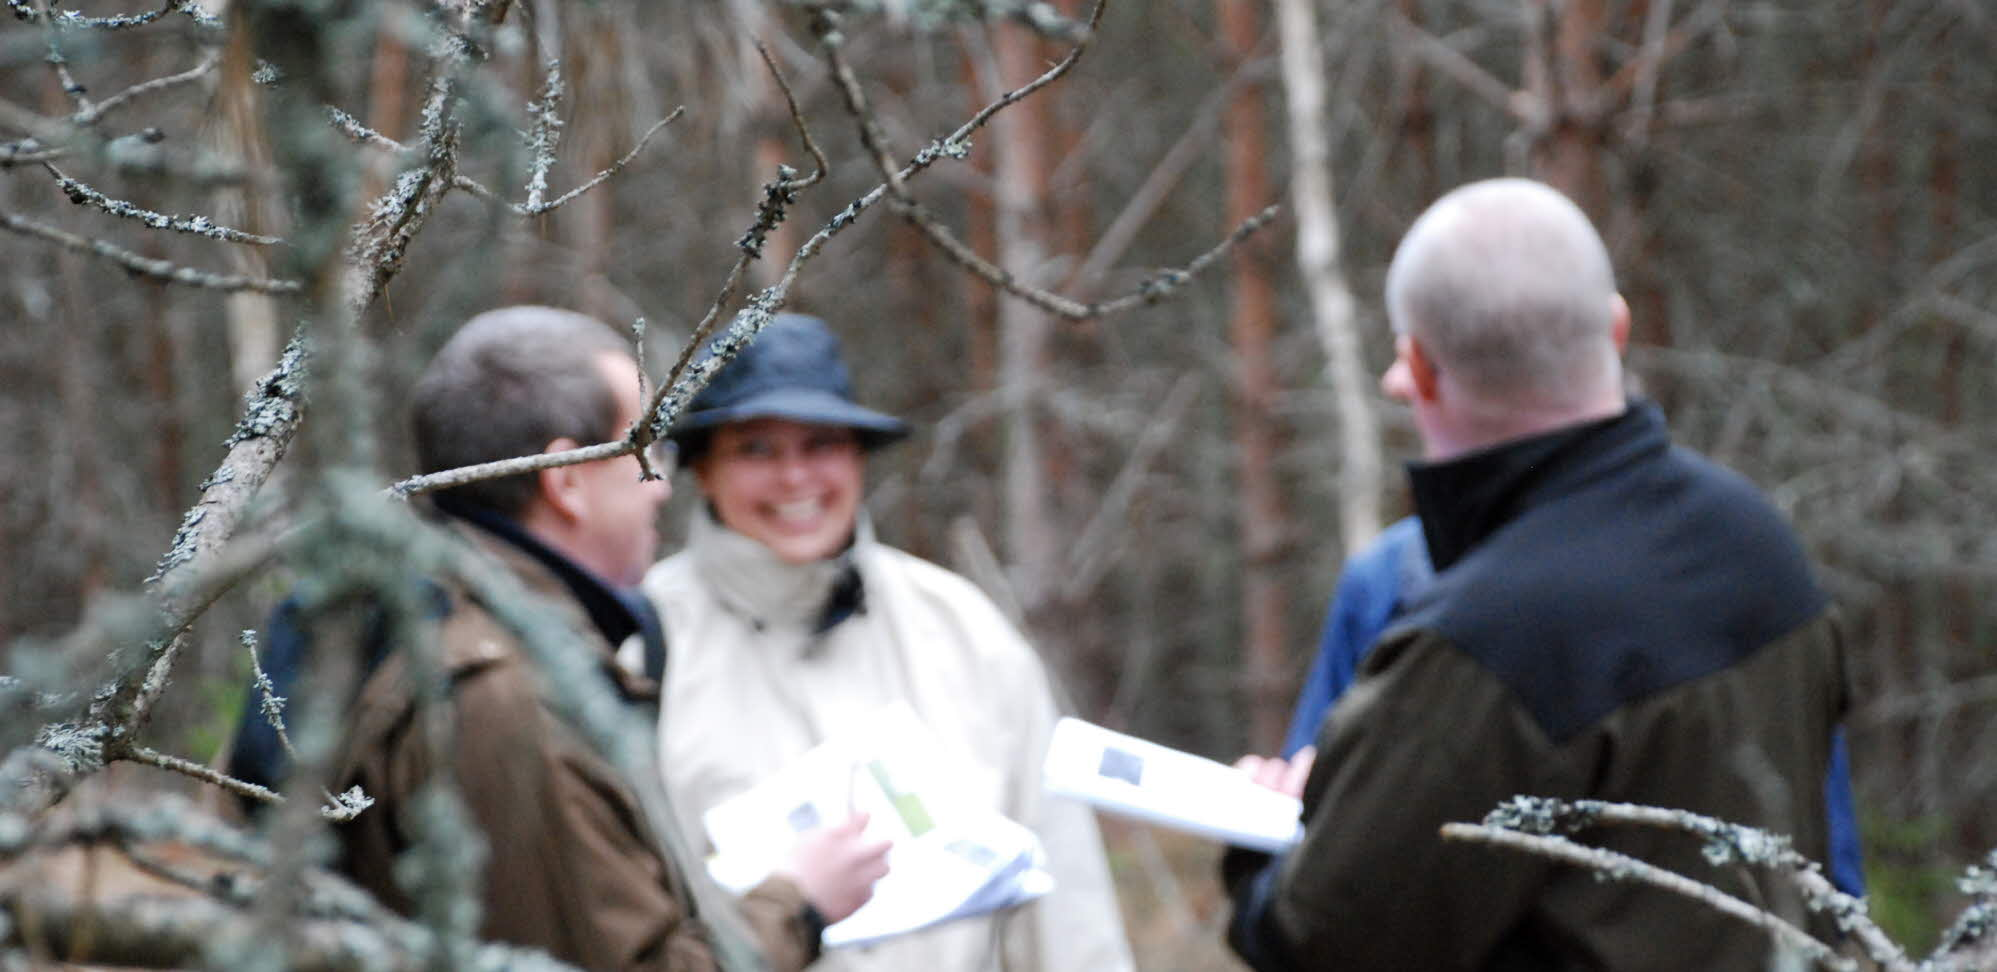 Students, meeting in the foreste i skogen